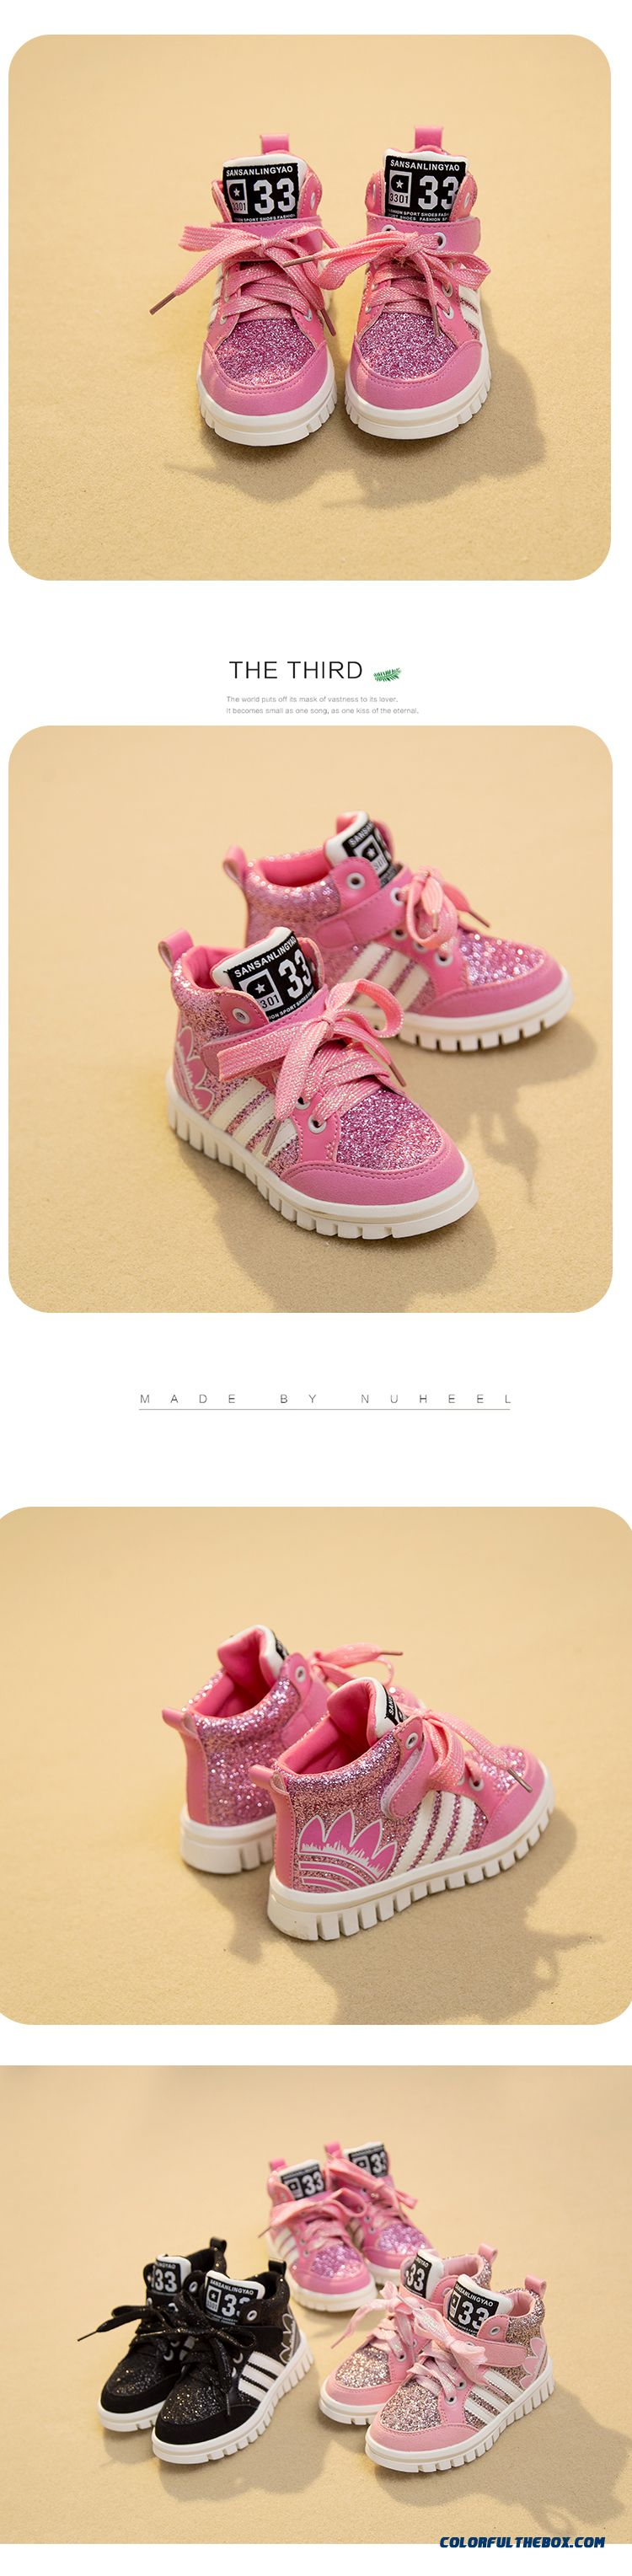 Girls Running Shoes Casual Shoes Sequined Board Sh Girls Running Shoes Casual Shoes Sequined Board Shoes Pink For Kidsoes Pink - detail images